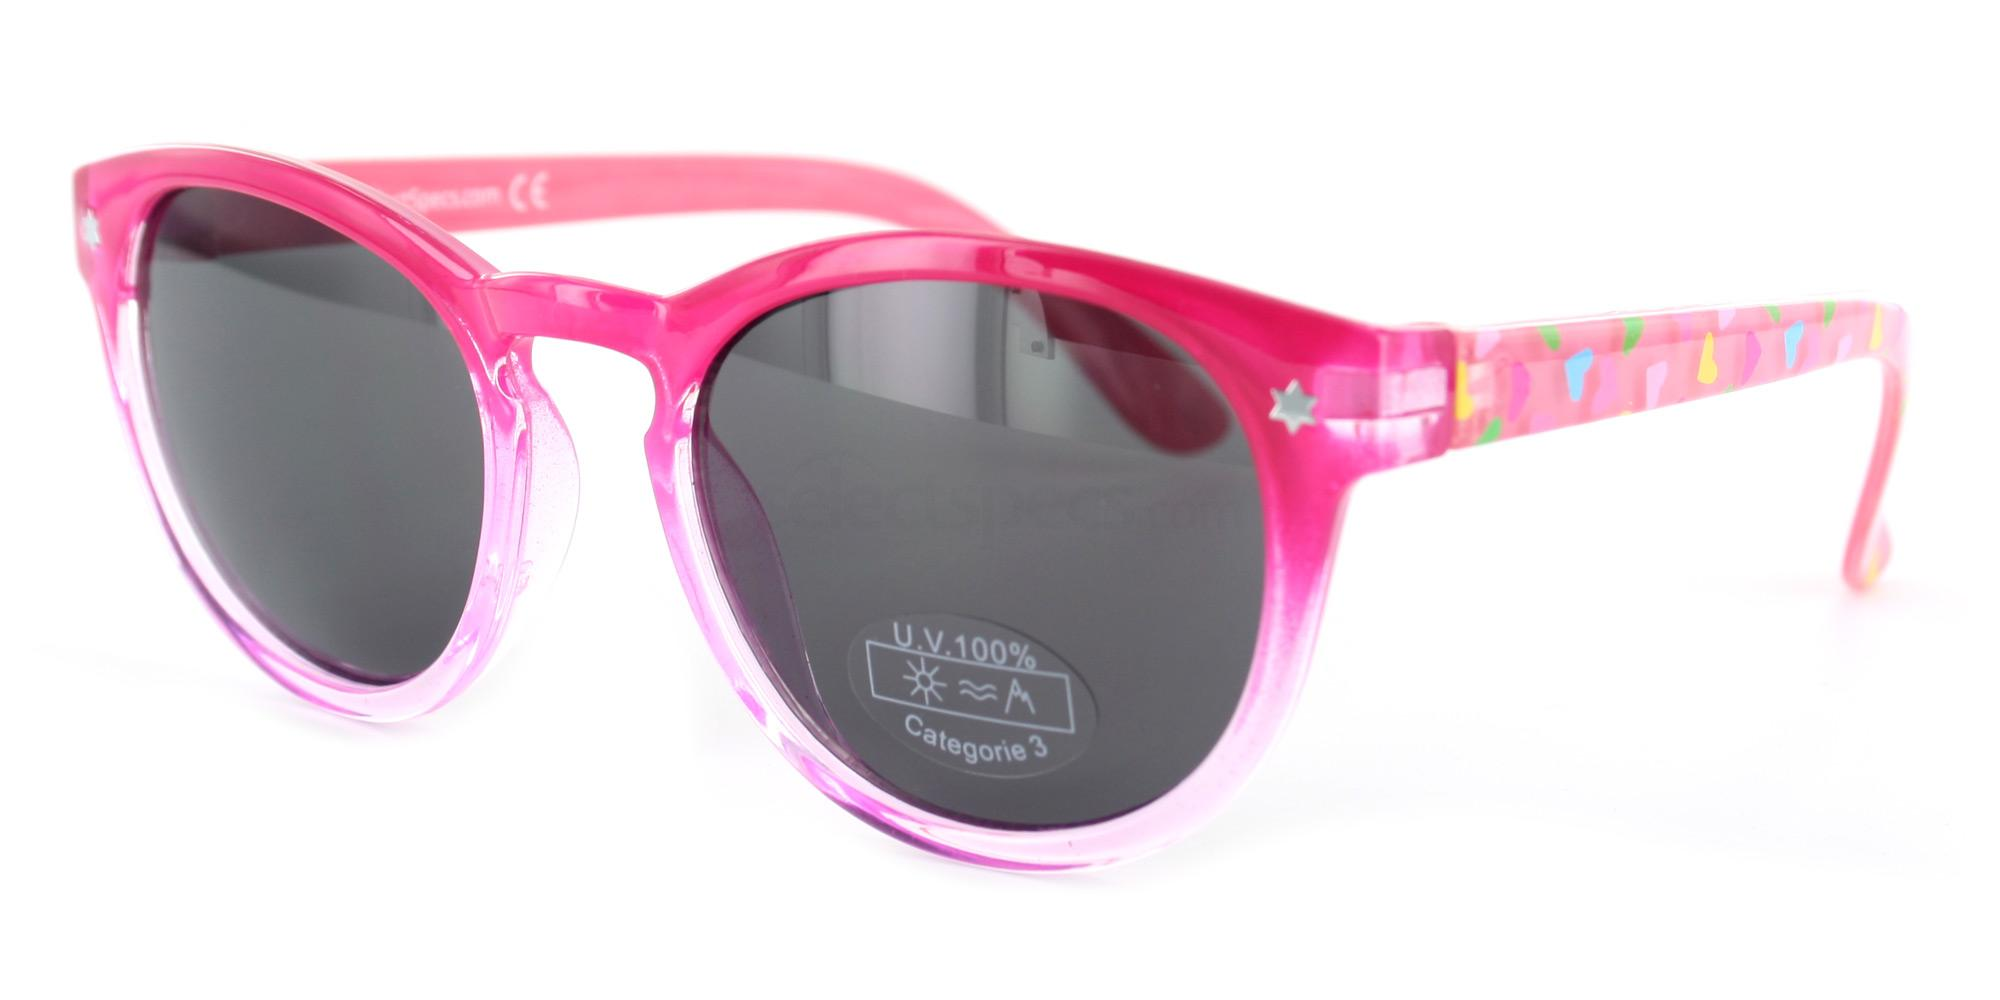 C06 KS04 - Round Sunglasses, Savannah KIDS